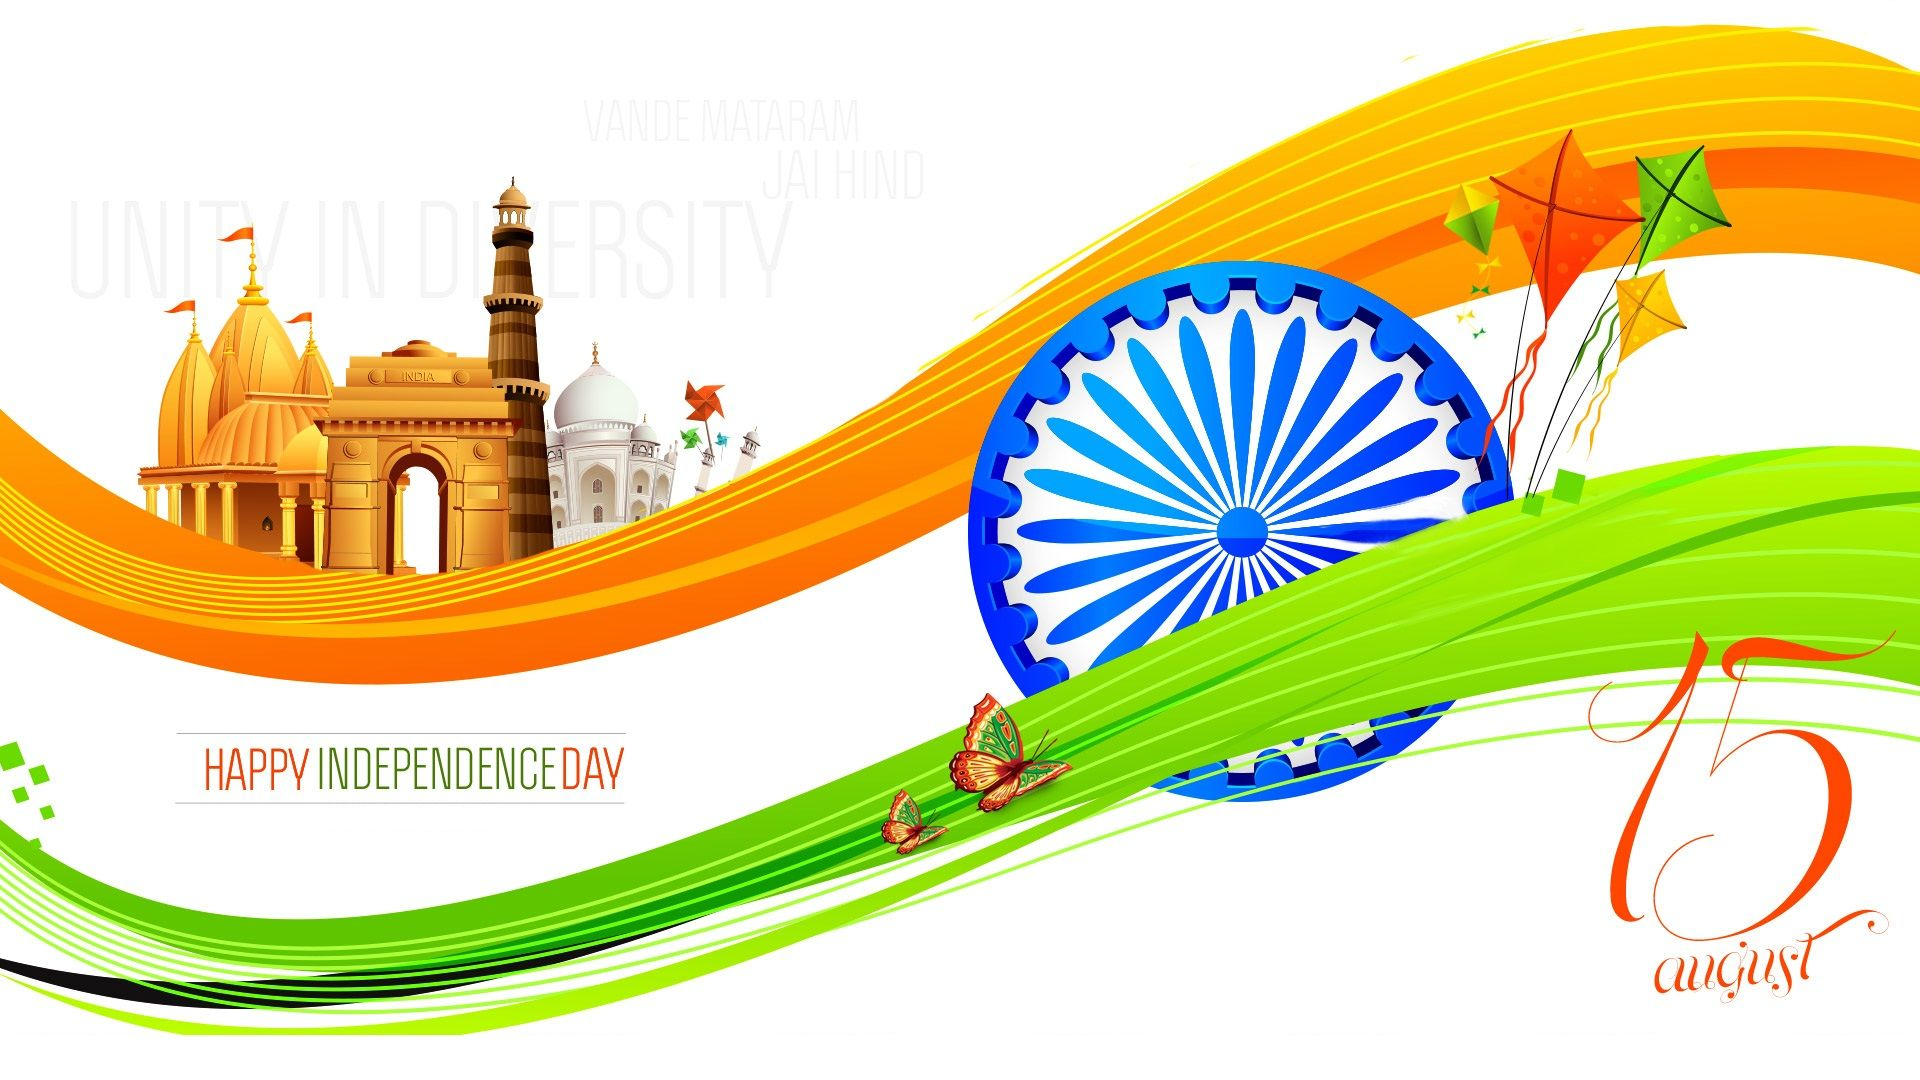 Happy Independence Day Hd Wallpapers Independence Day Wallpaper